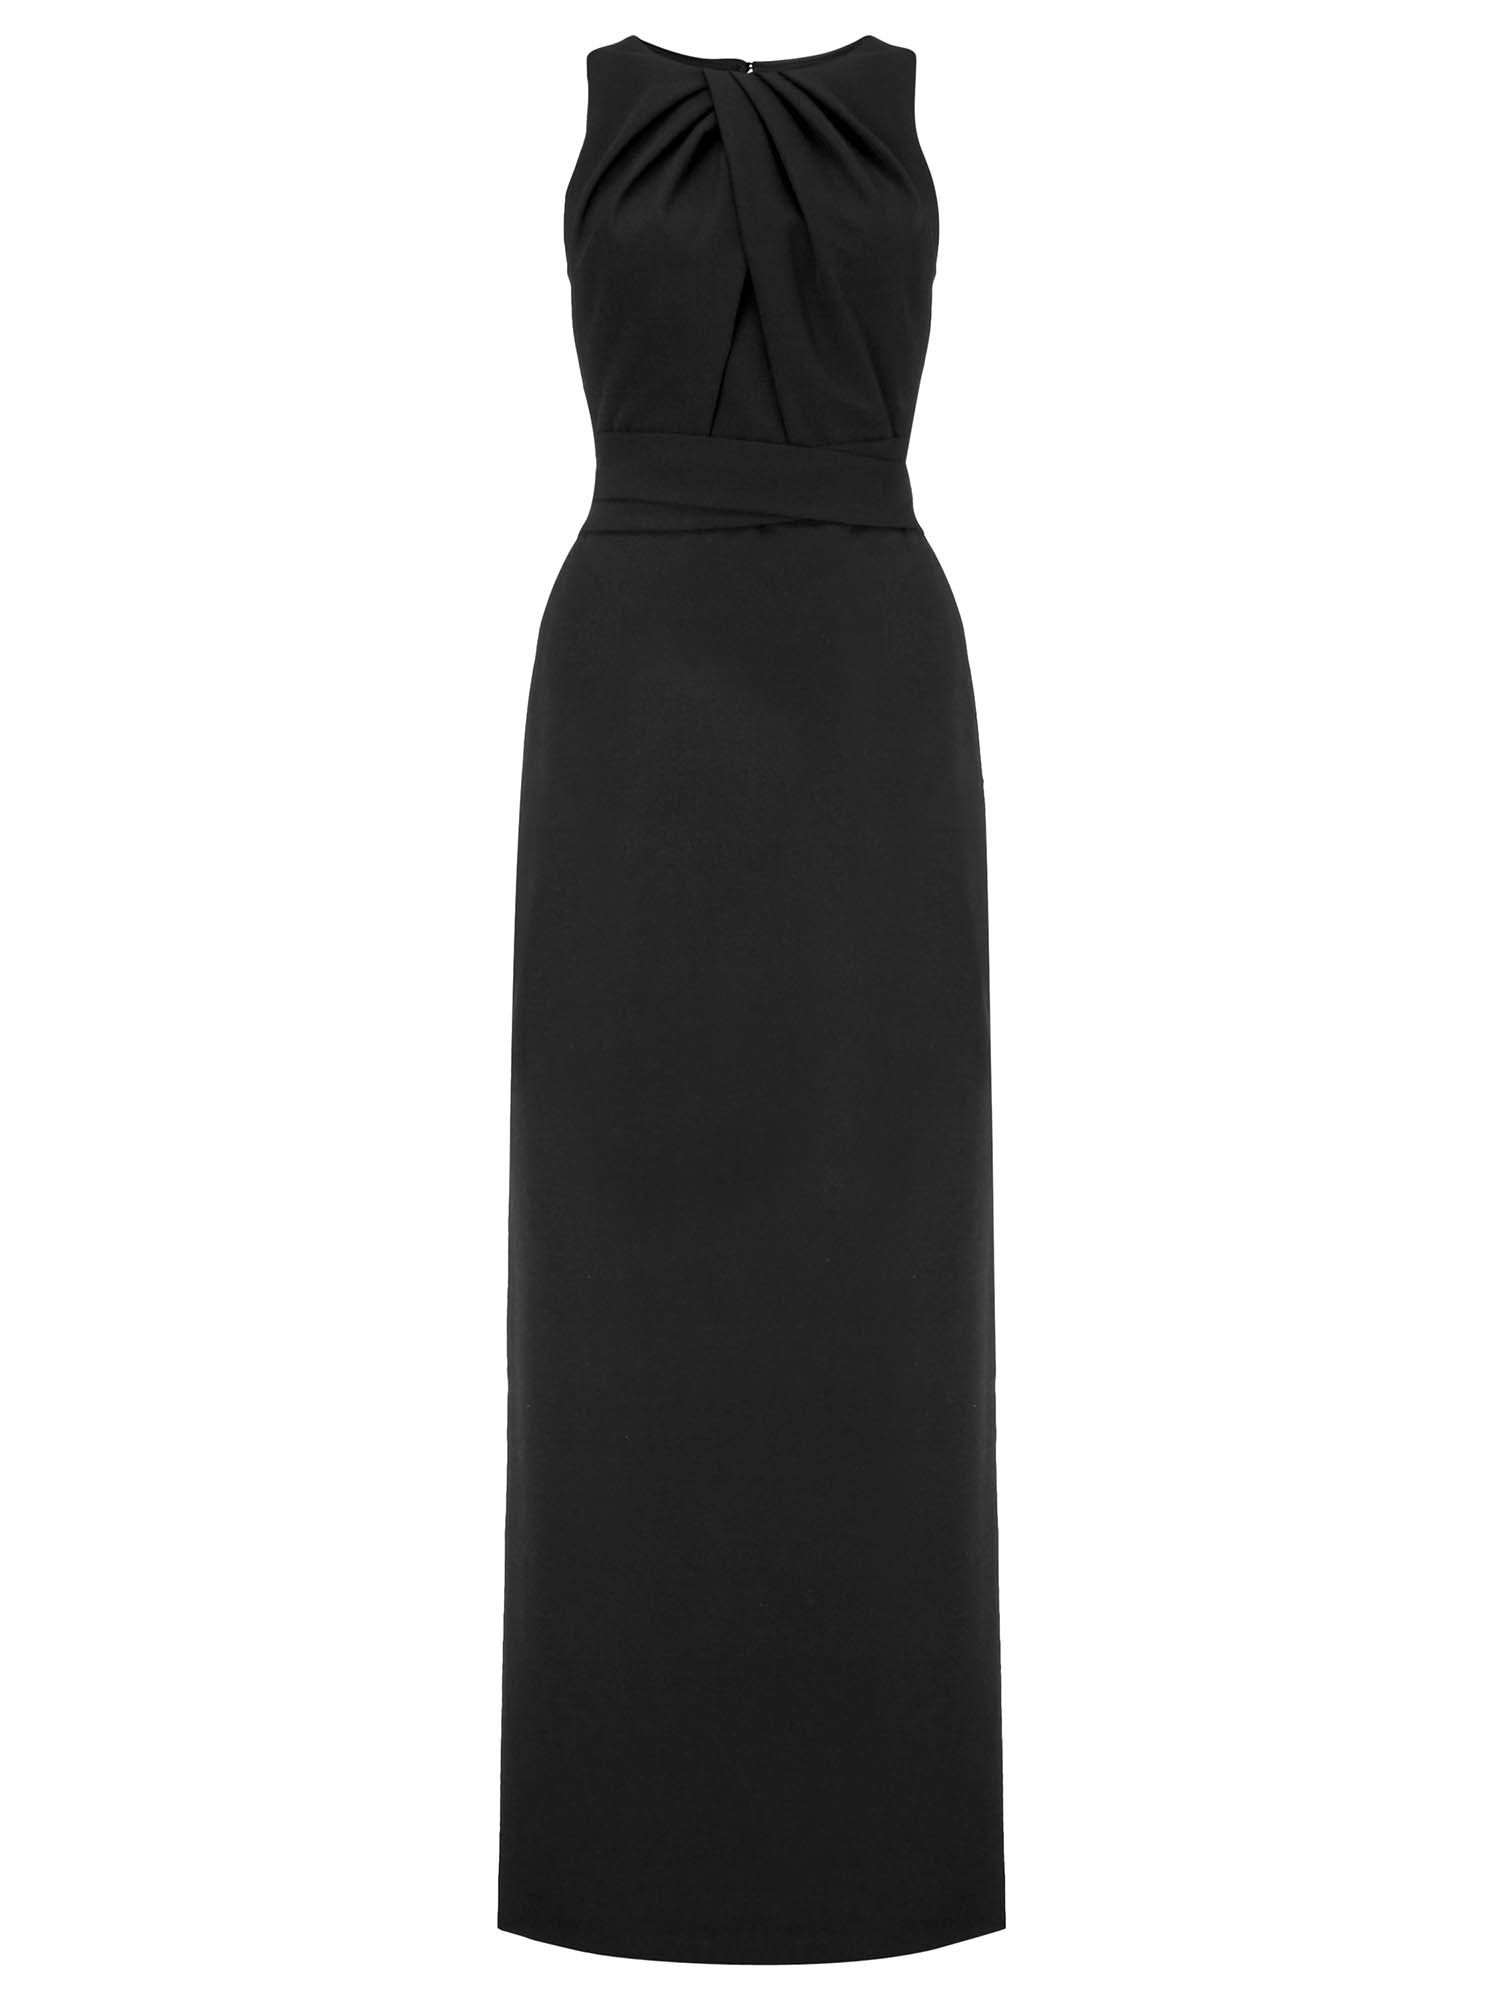 Ariella hope illusion evening dress, Black